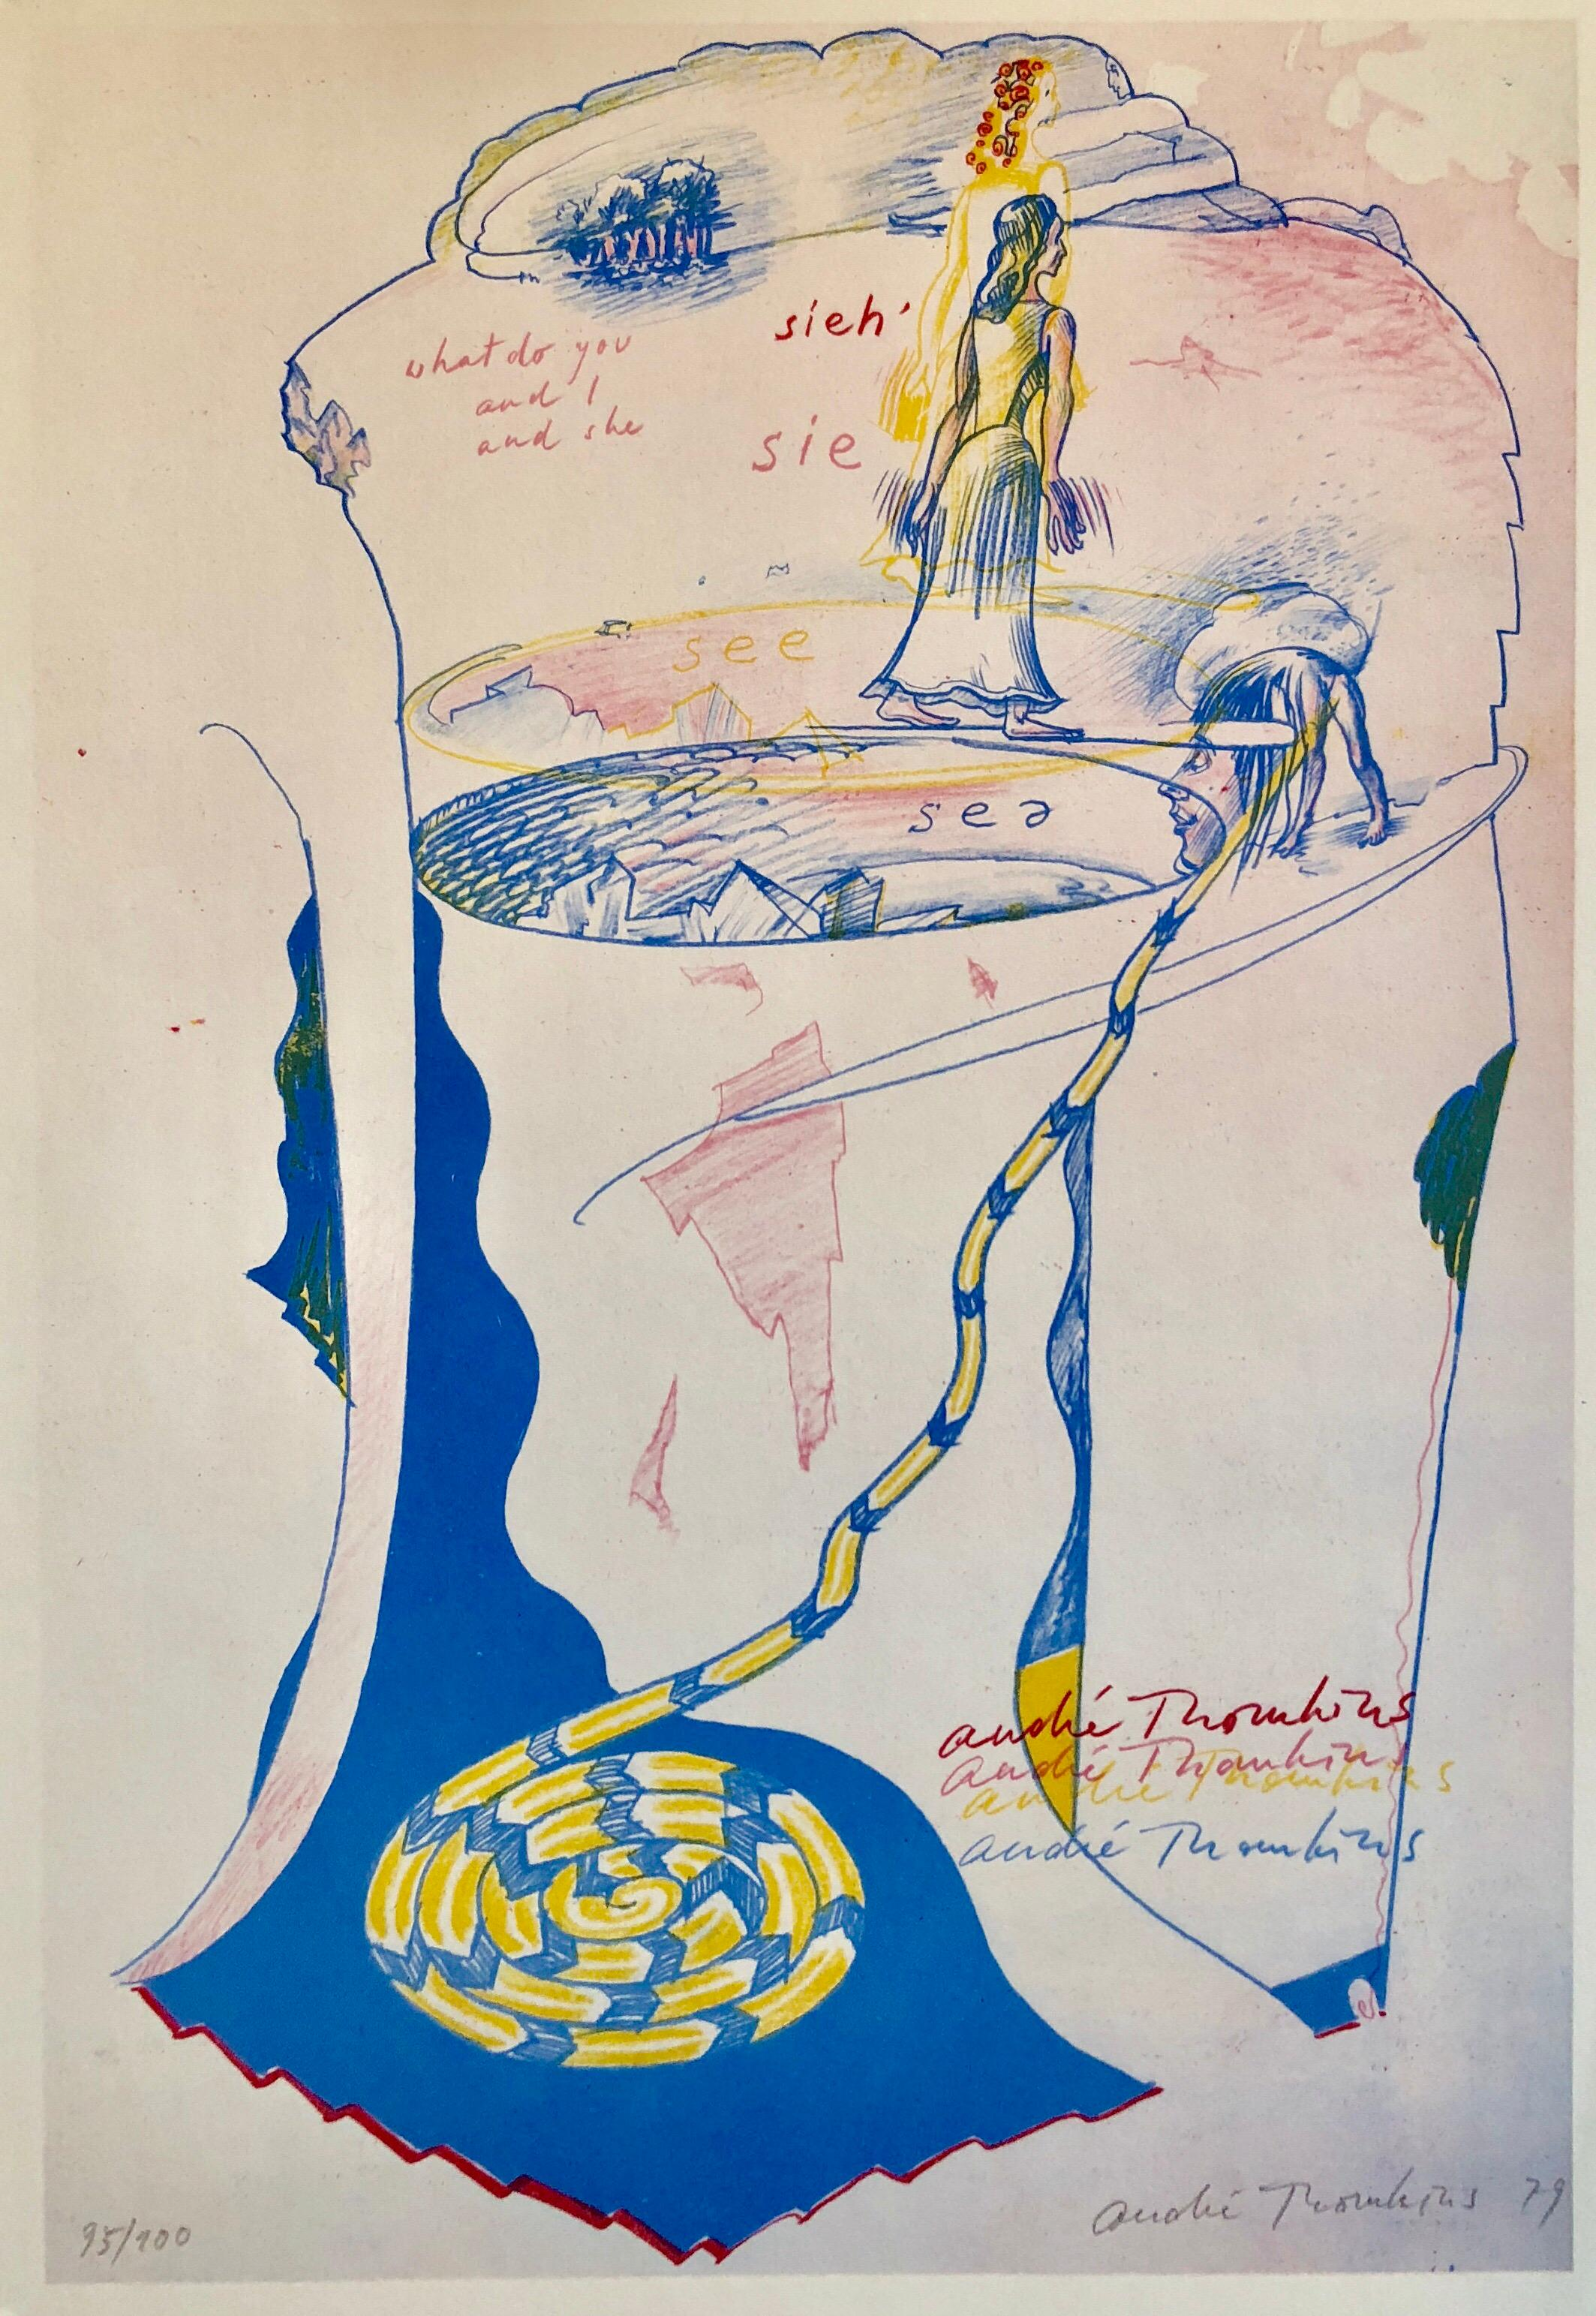 1970s Modernist Swiss Colorful Surrealism Signed Dada Lithograph Andre Thomkins